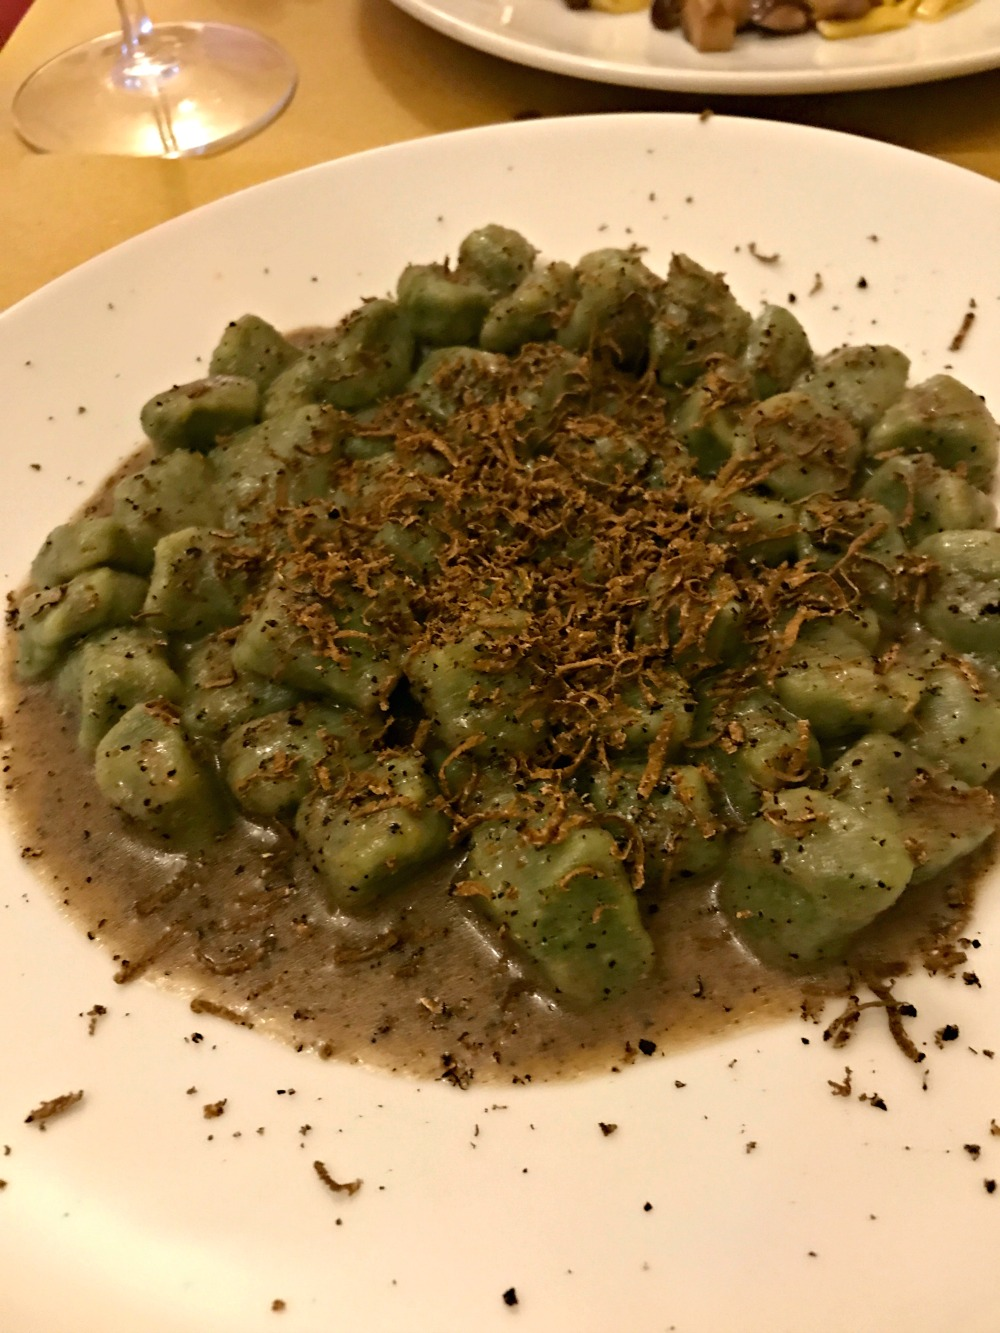 - Green nettle gnocchi with fresh truffles for me.